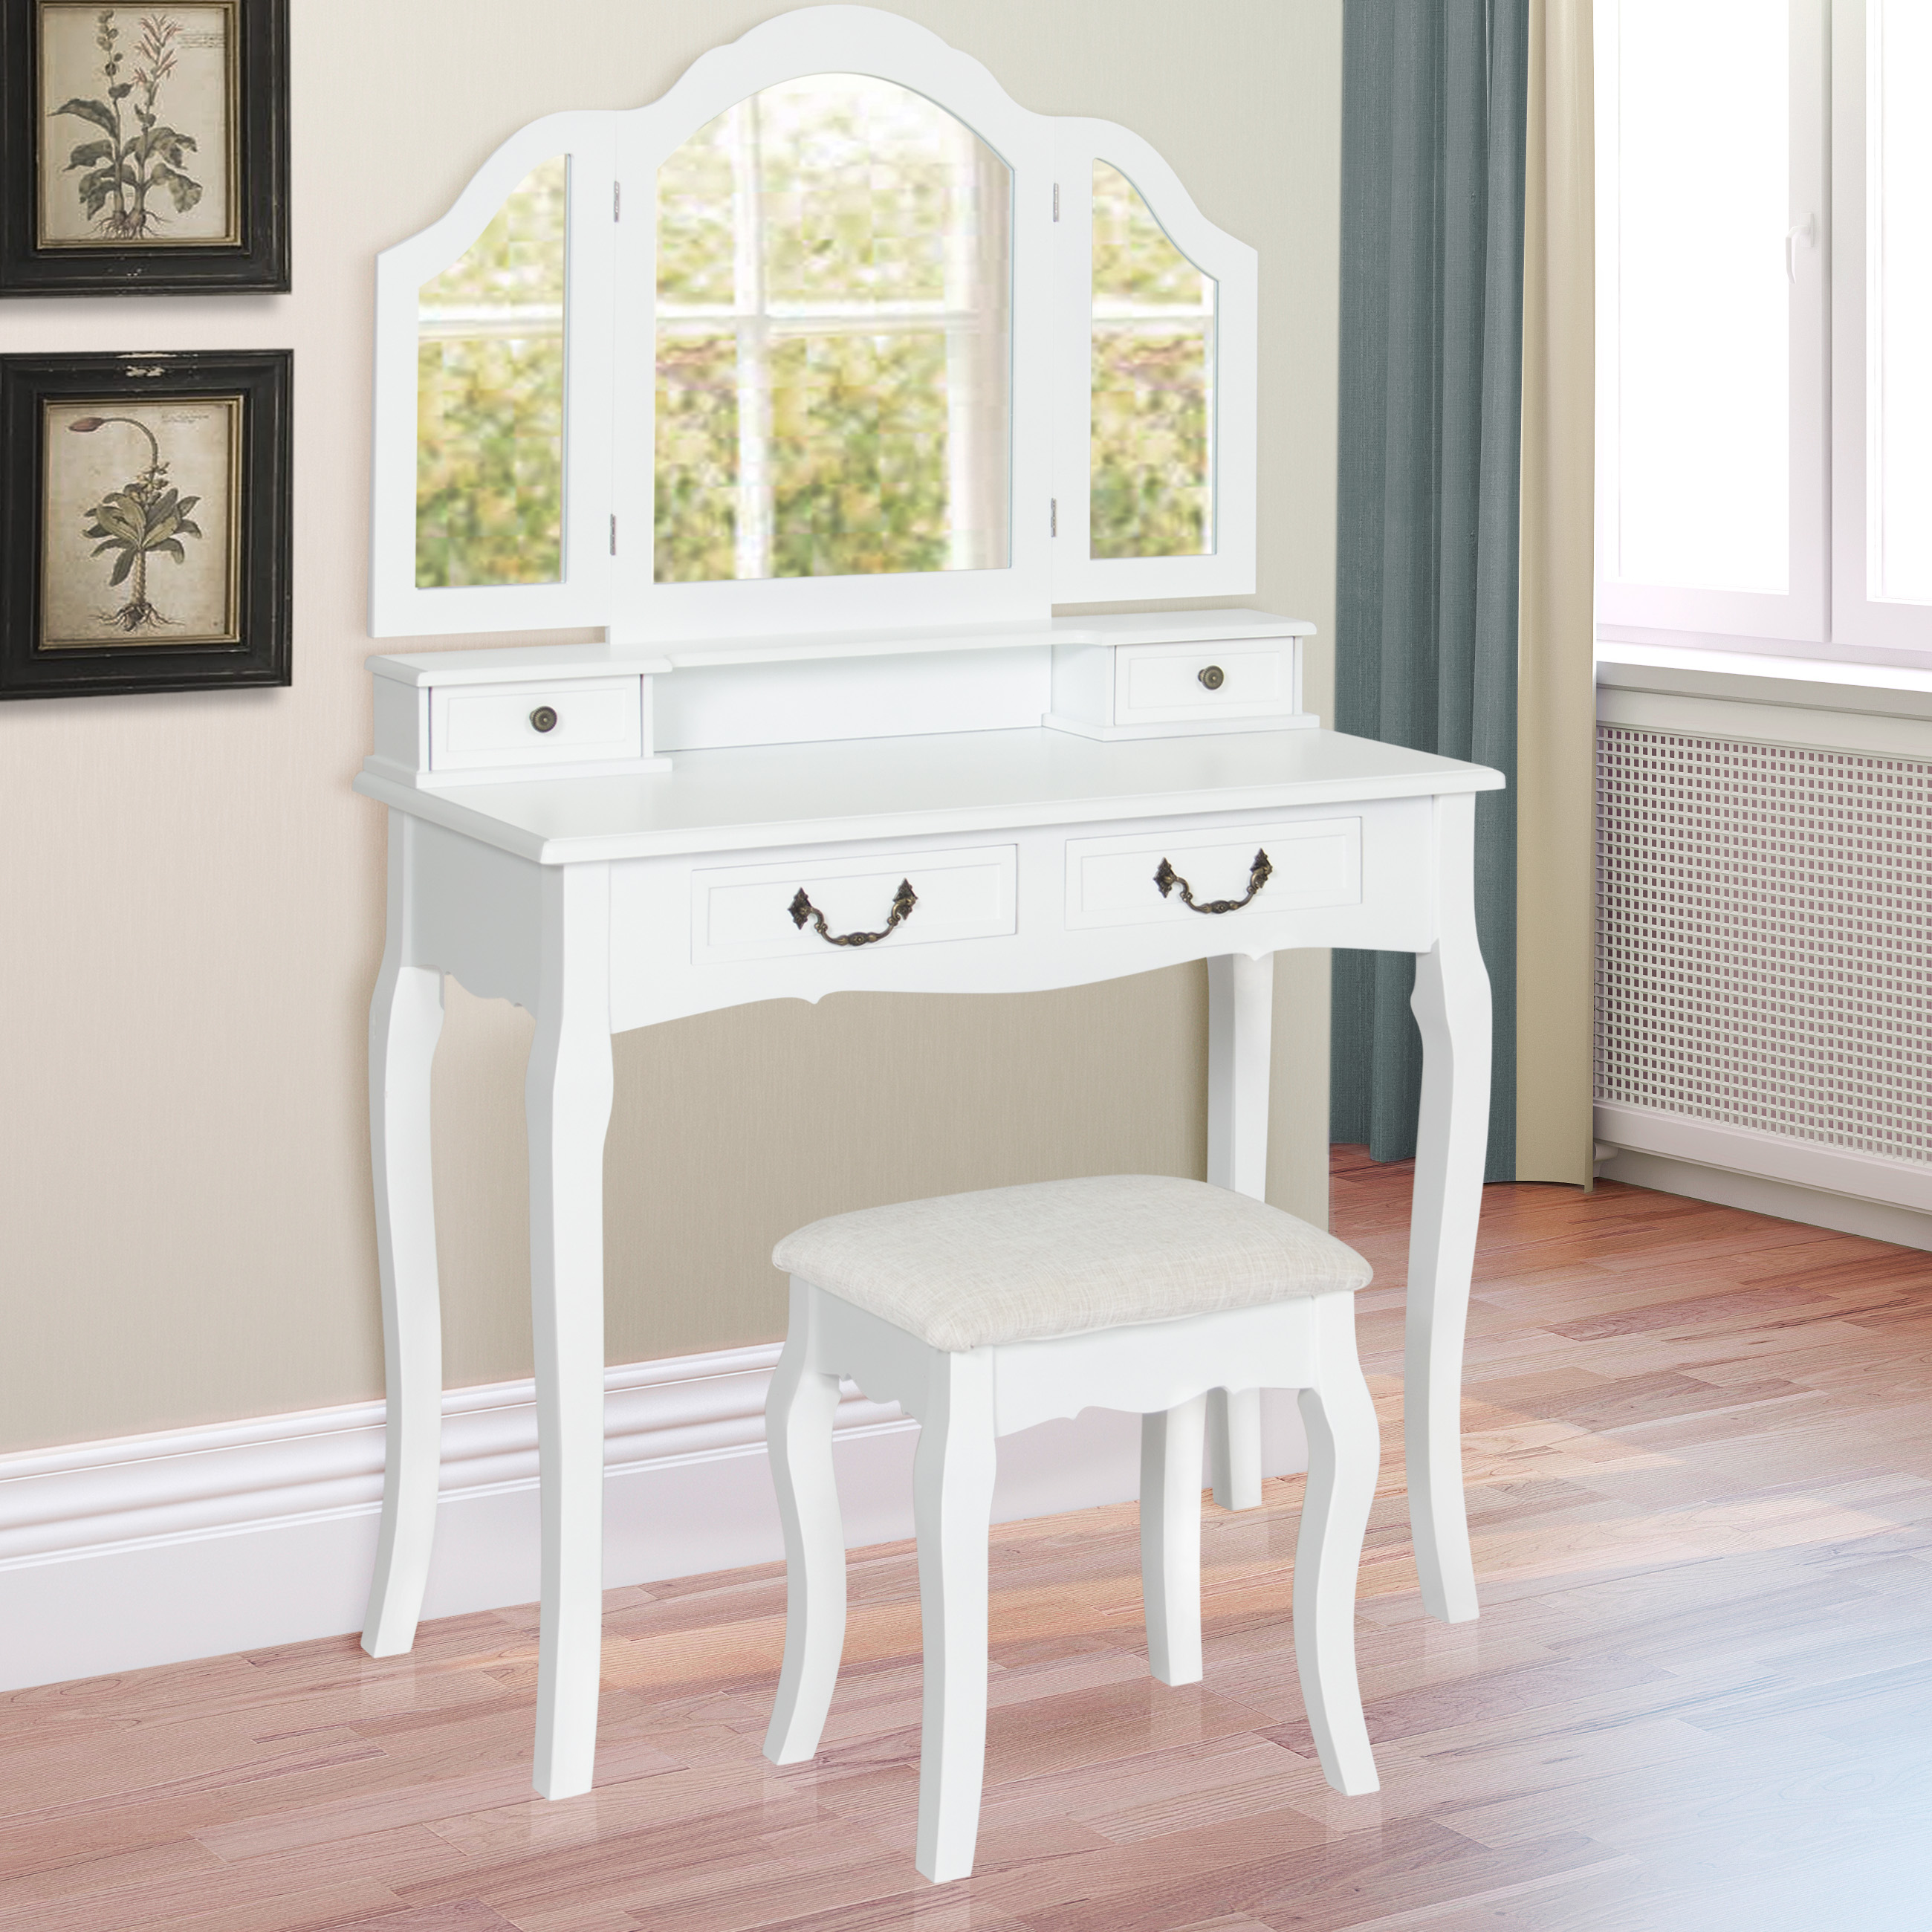 Best Choice Products Bathroom Tri-Mirror Vanity Table Set W  Stool Hair Dressing Organizer- White by